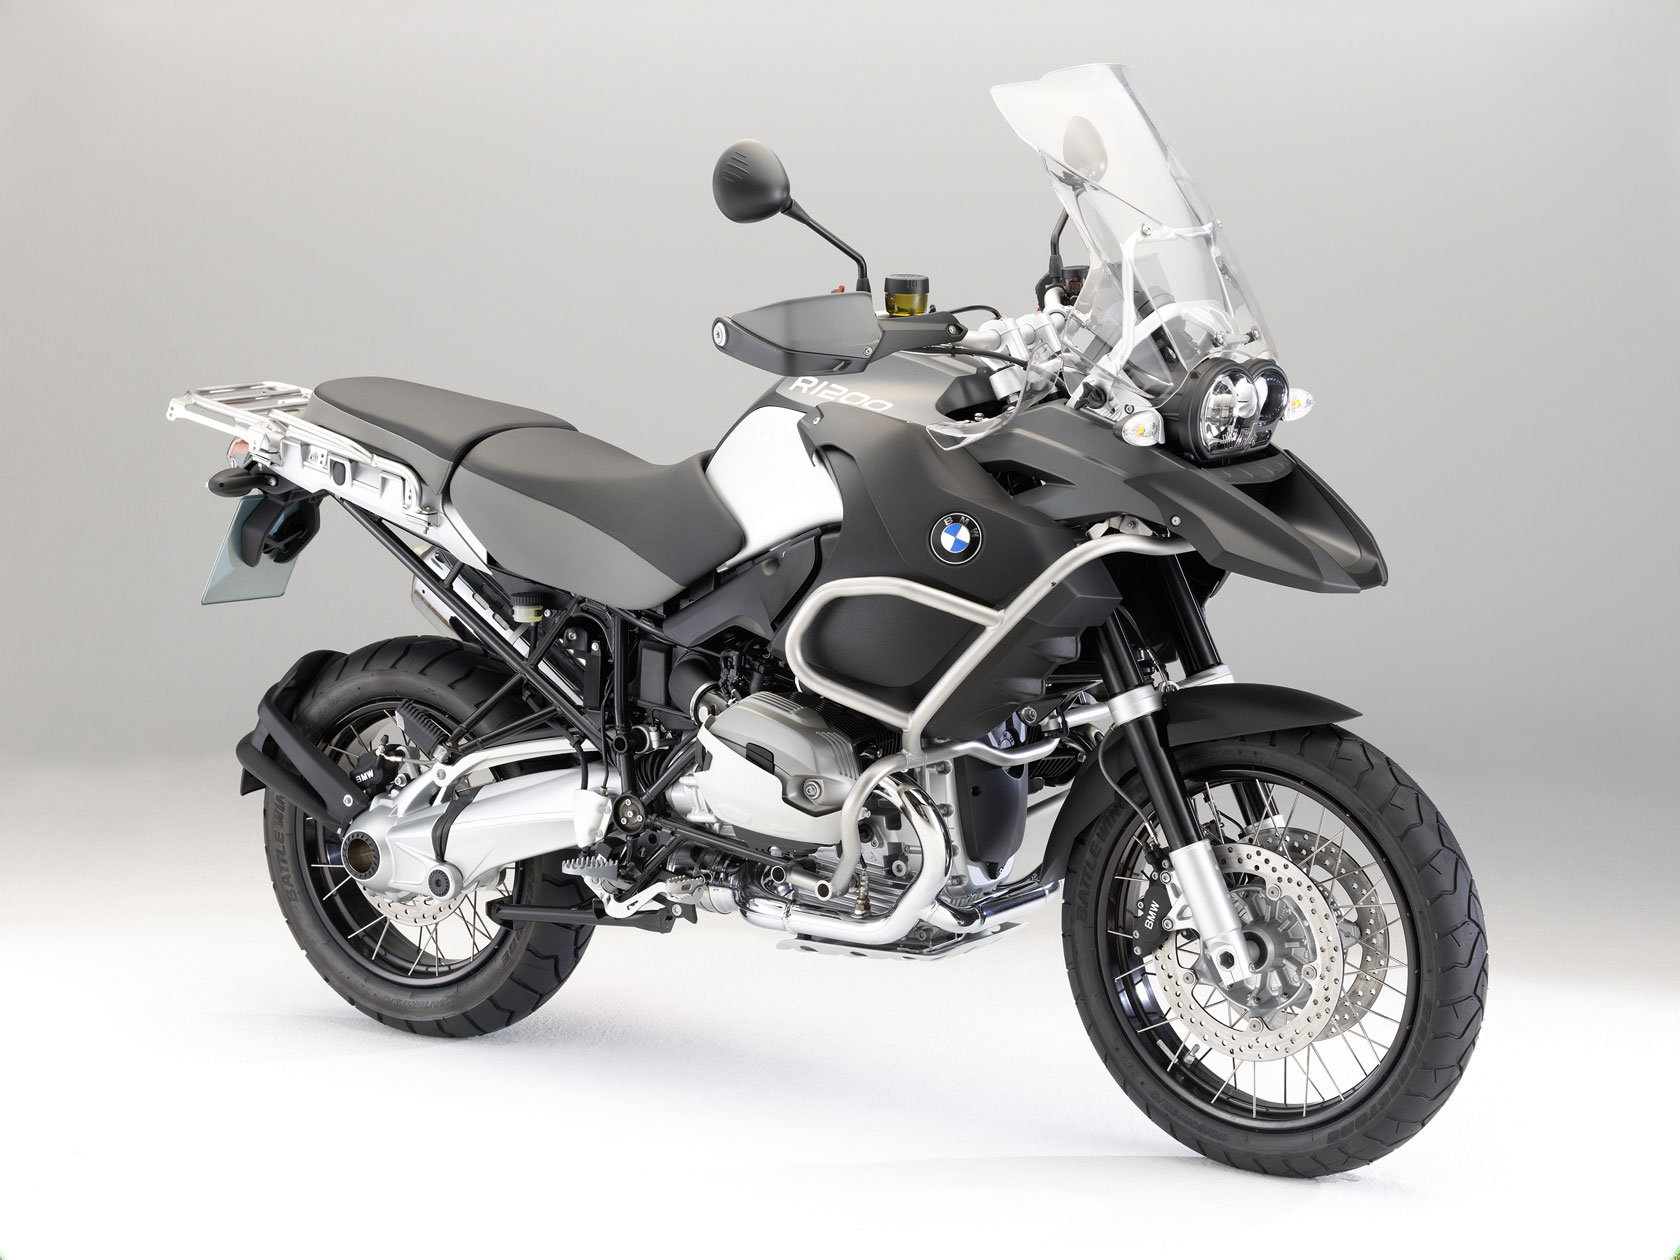 bmw r1200gs adventure 2010 2013 dohc 81kw k25 blog. Black Bedroom Furniture Sets. Home Design Ideas